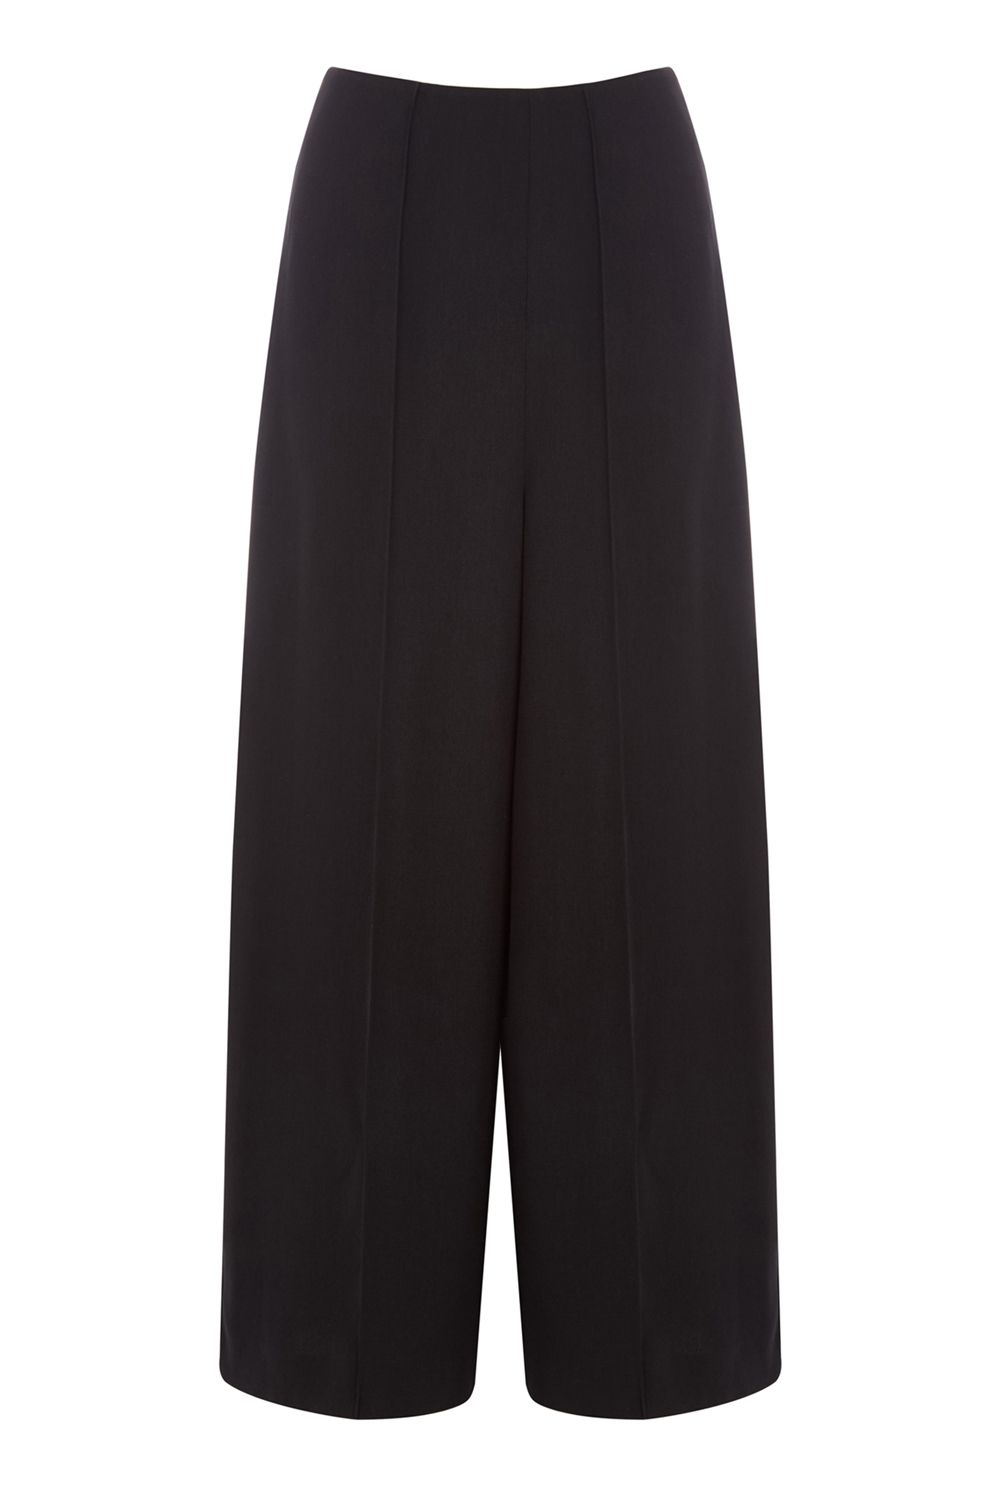 Warehouse Pintuck Culottes, Black